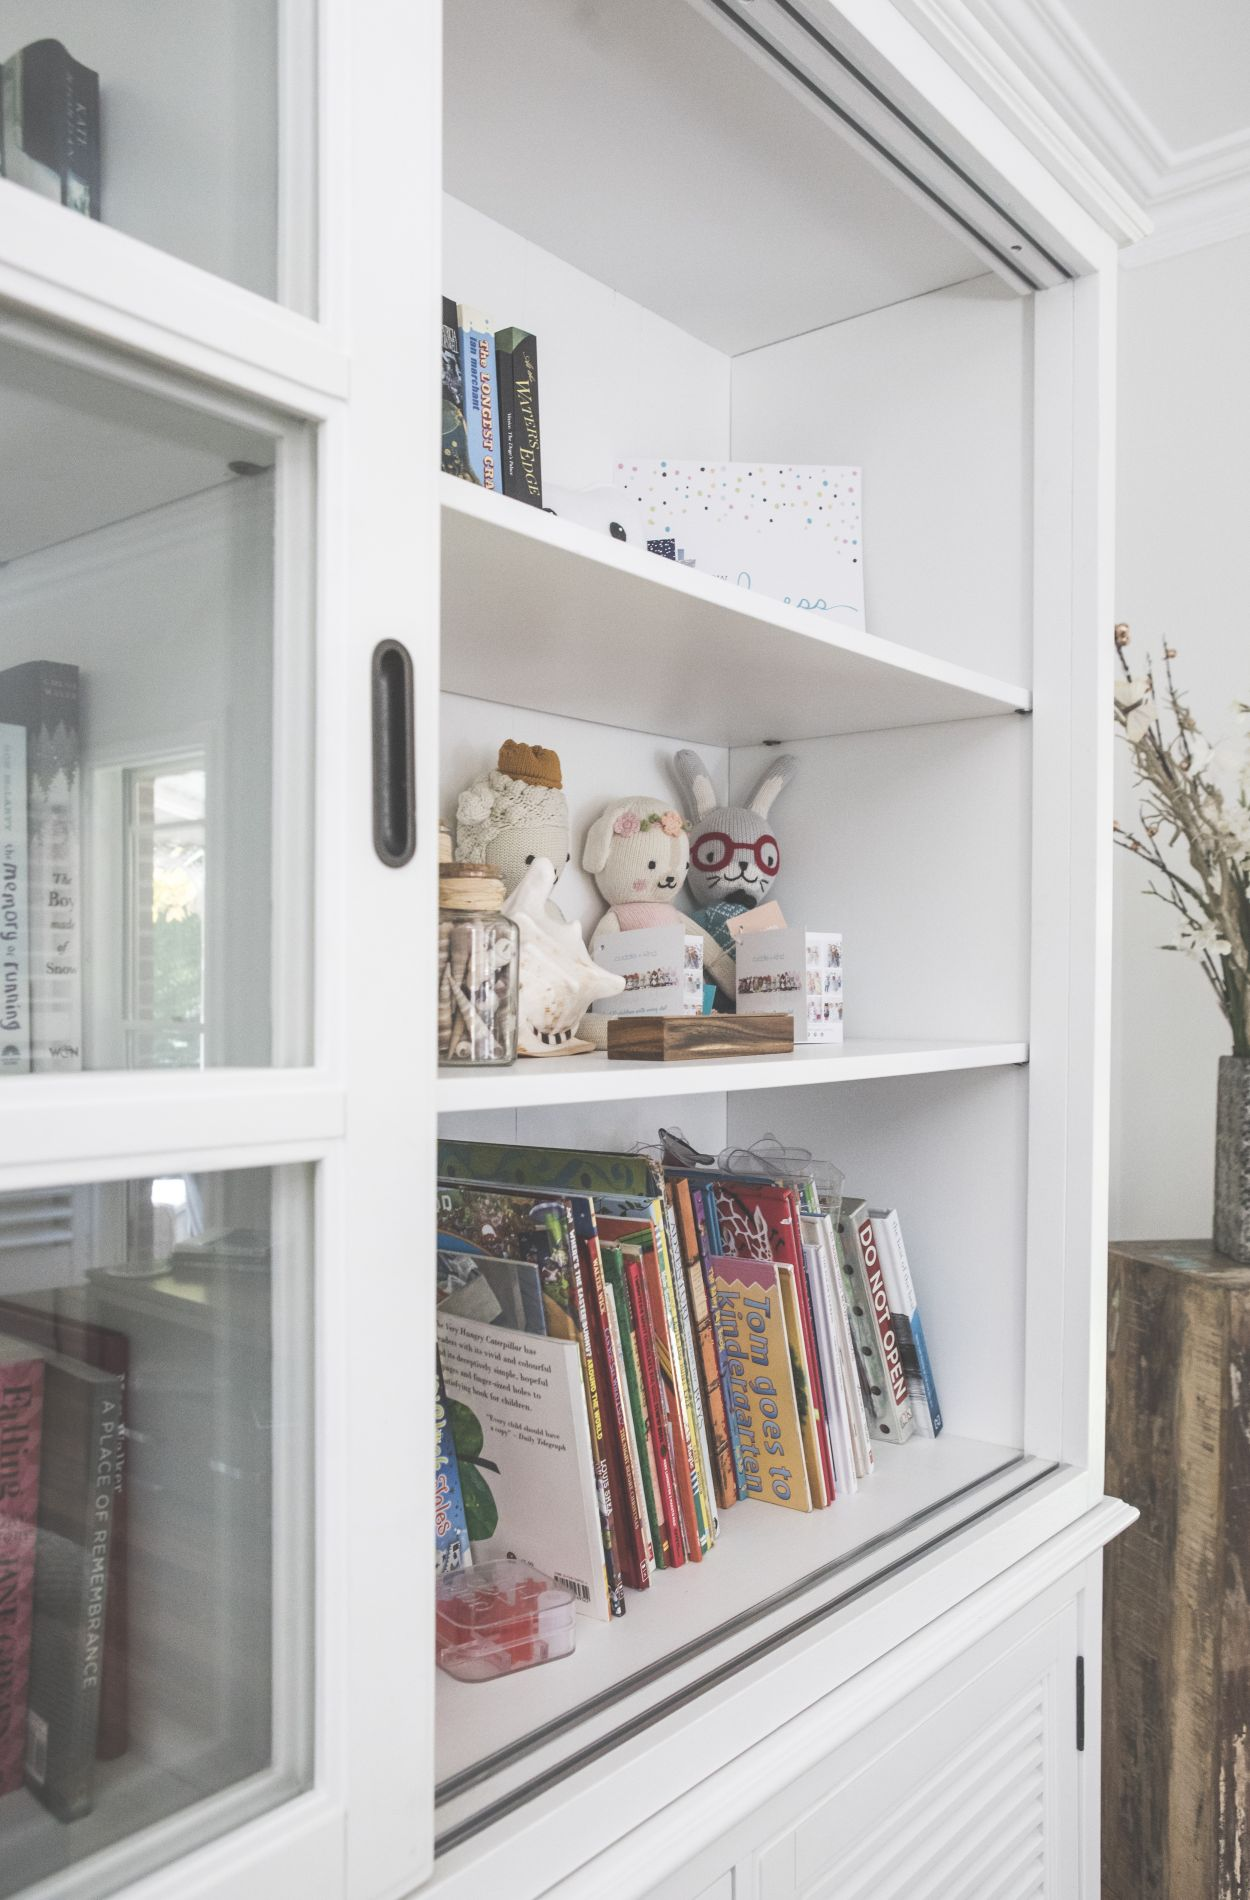 Family friendly book shelves with children toys at diggers beach cottage